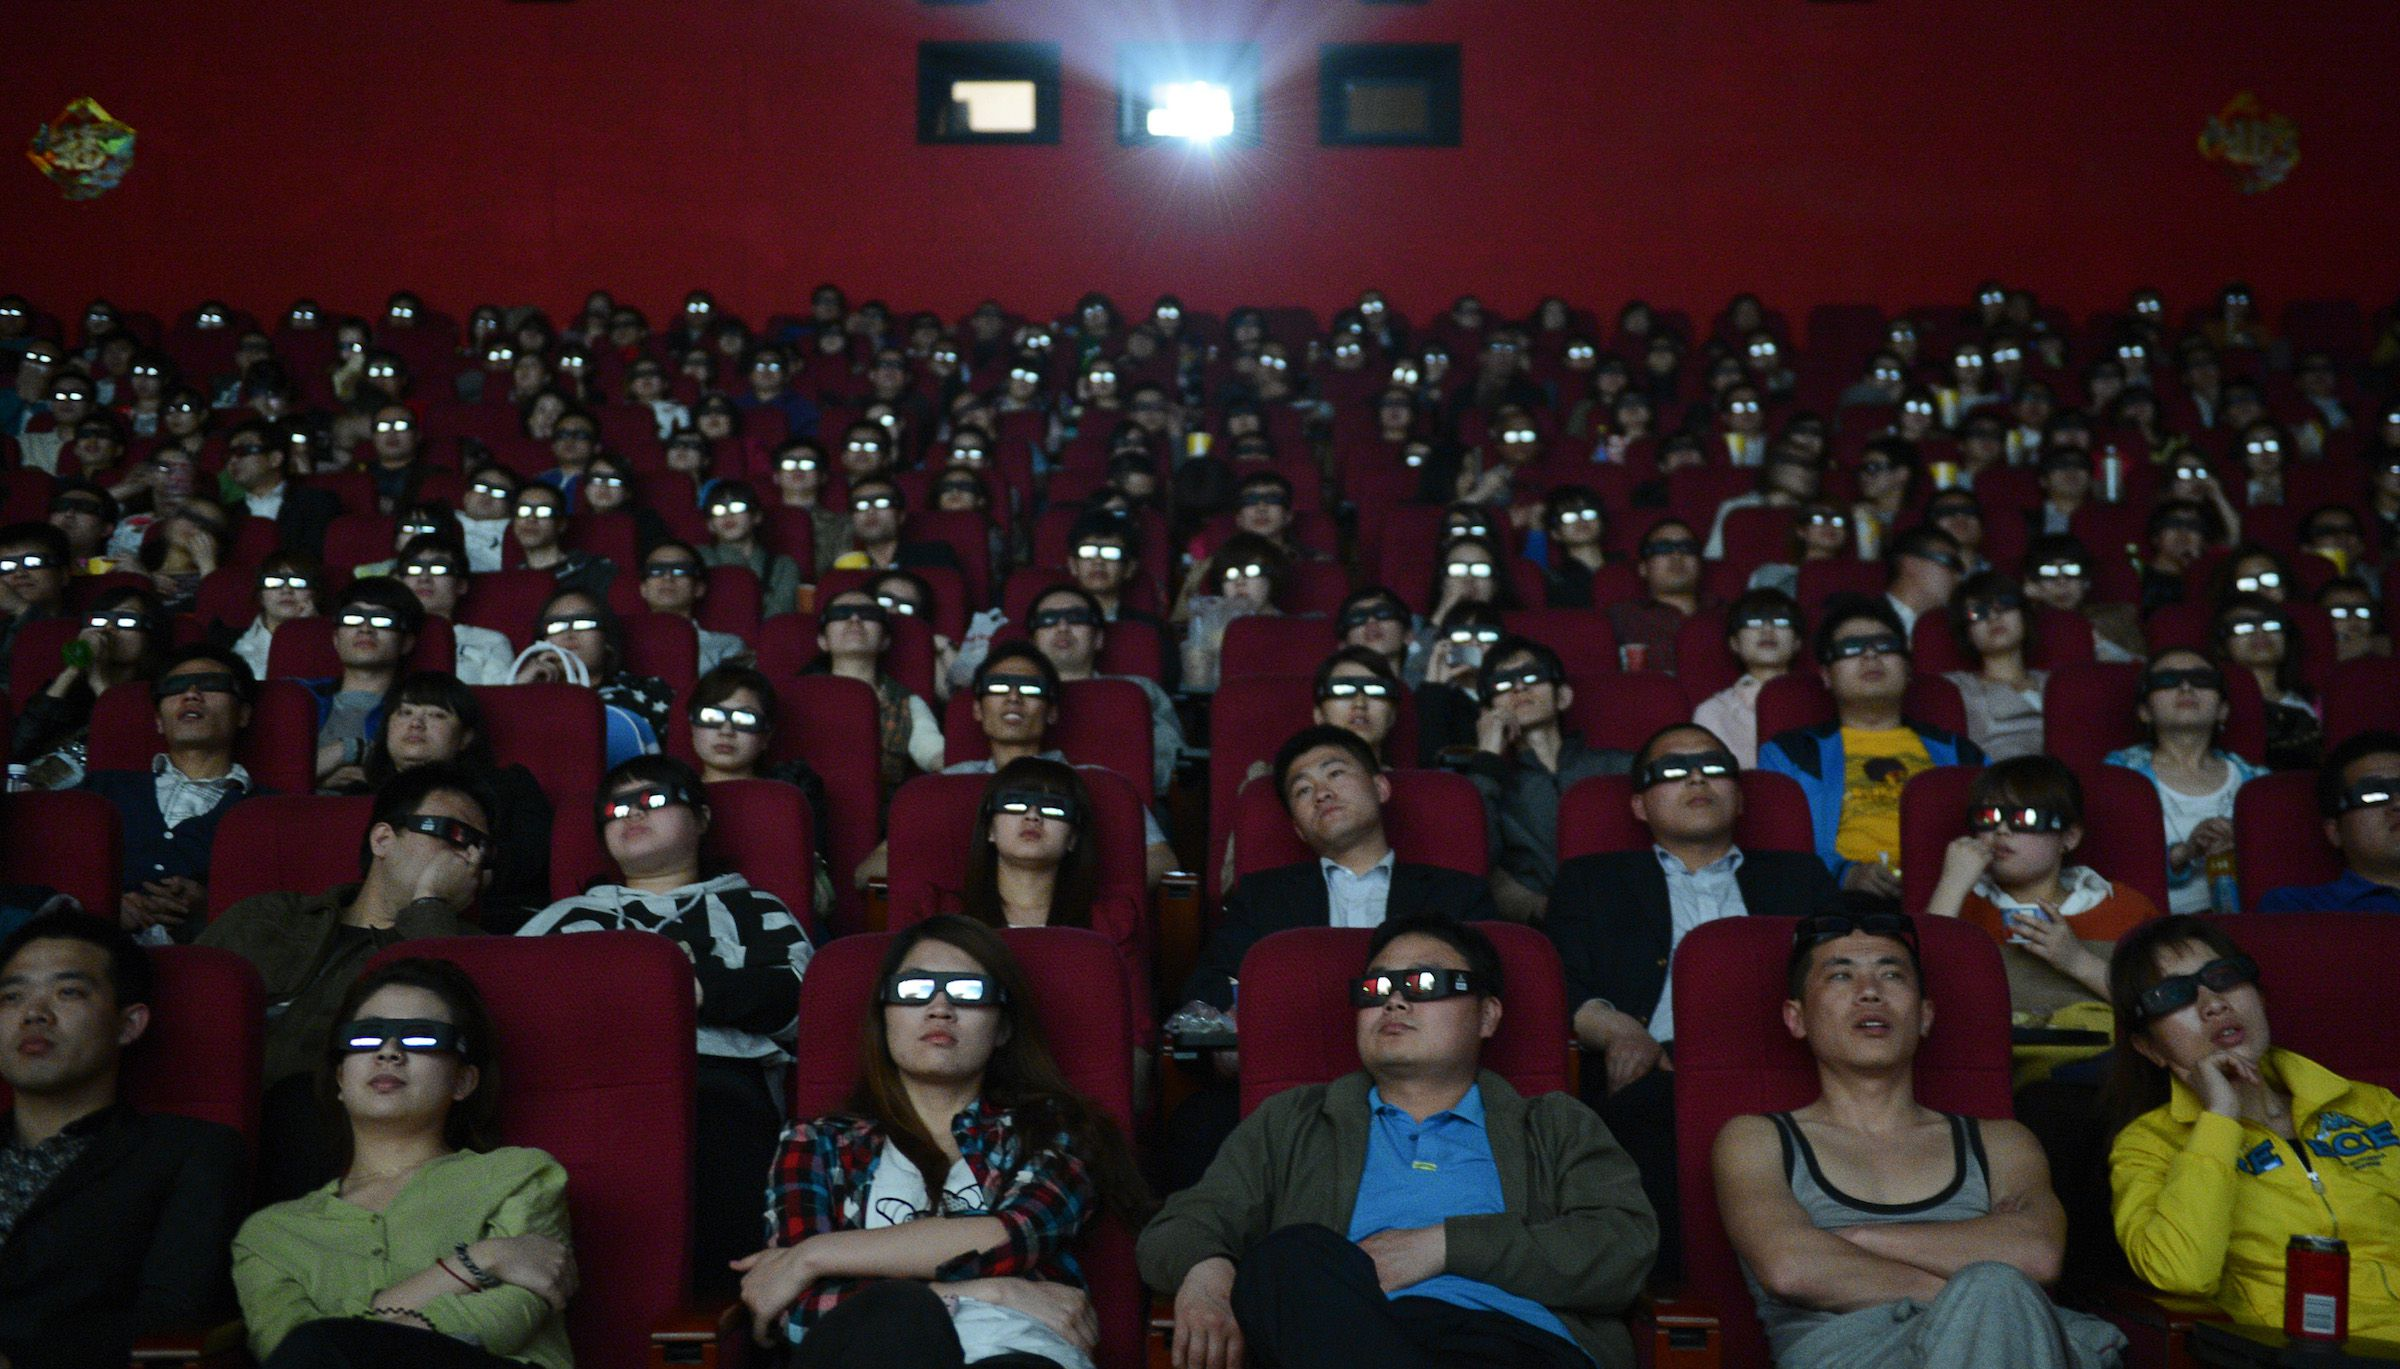 """People wearing 3D glasses watch the film """"Titanic 3D"""" at a movie theatre in Taiyuan, Shanxi province April 10, 2012. Titanic 3D began showing in Chinese cinemas on Tuesday. REUTERS/Stringer (CHINA - Tags: ENTERTAINMENT SOCIETY) CHINA OUT. NO COMMERCIAL OR EDITORIAL SALES IN CHINA"""